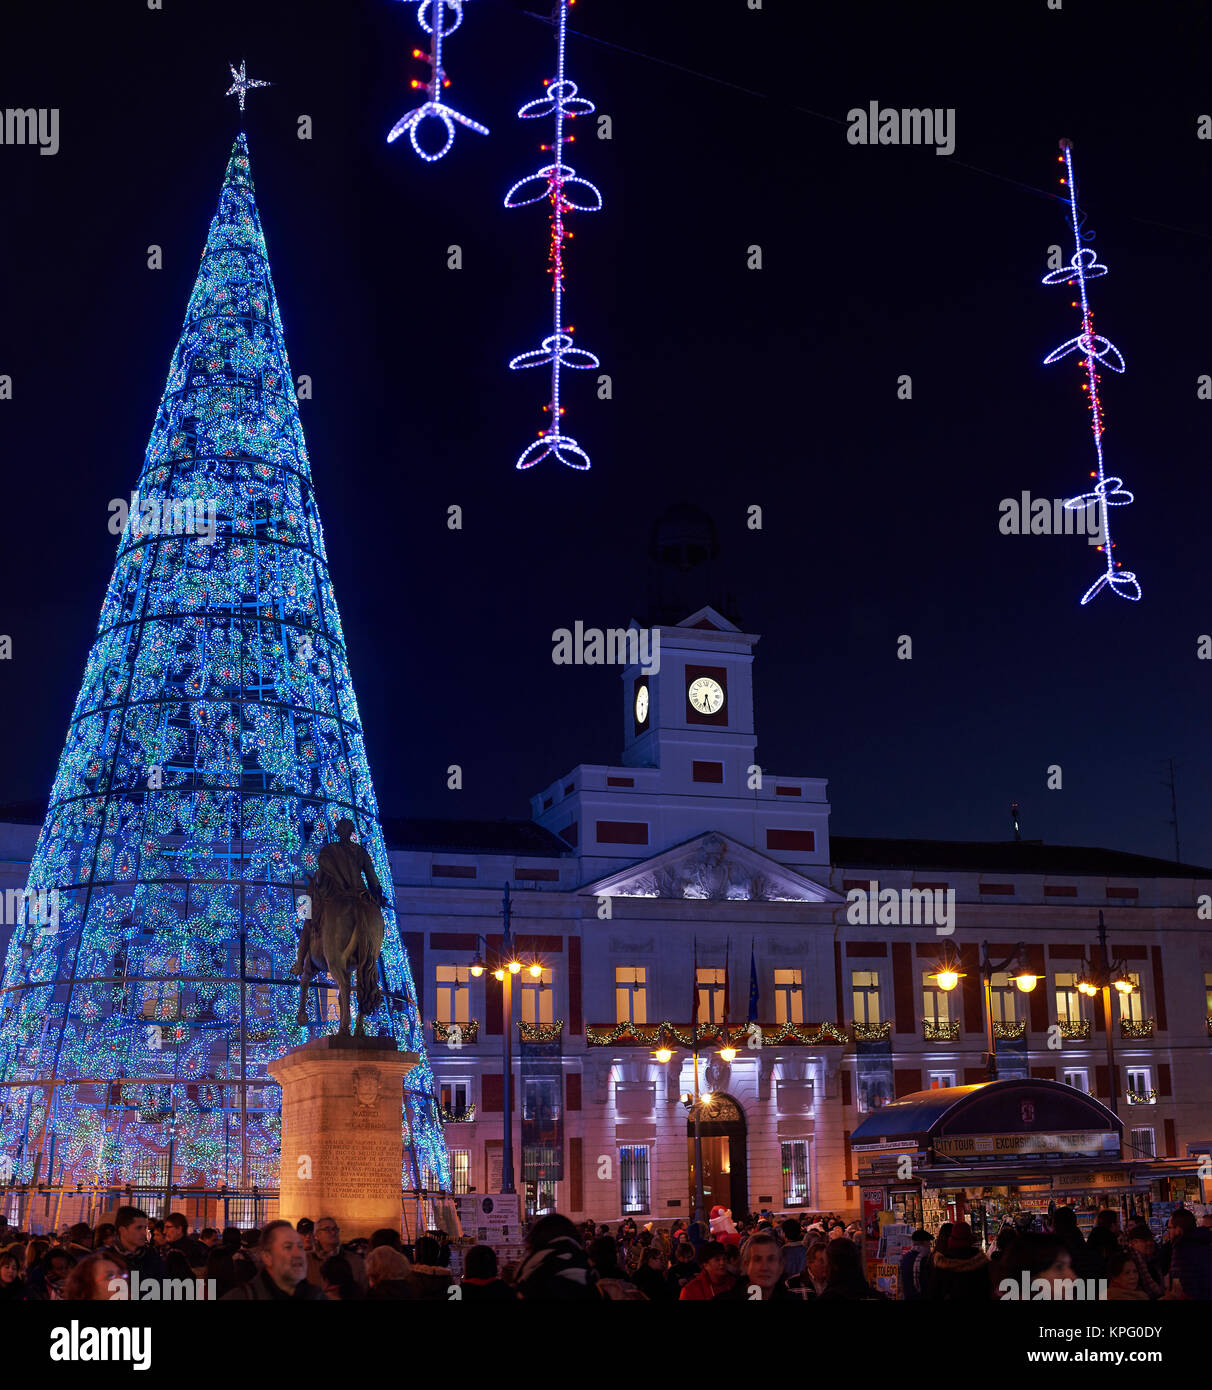 Casa de sol stock photos casa de sol stock images alamy for Puerta del sol 2017